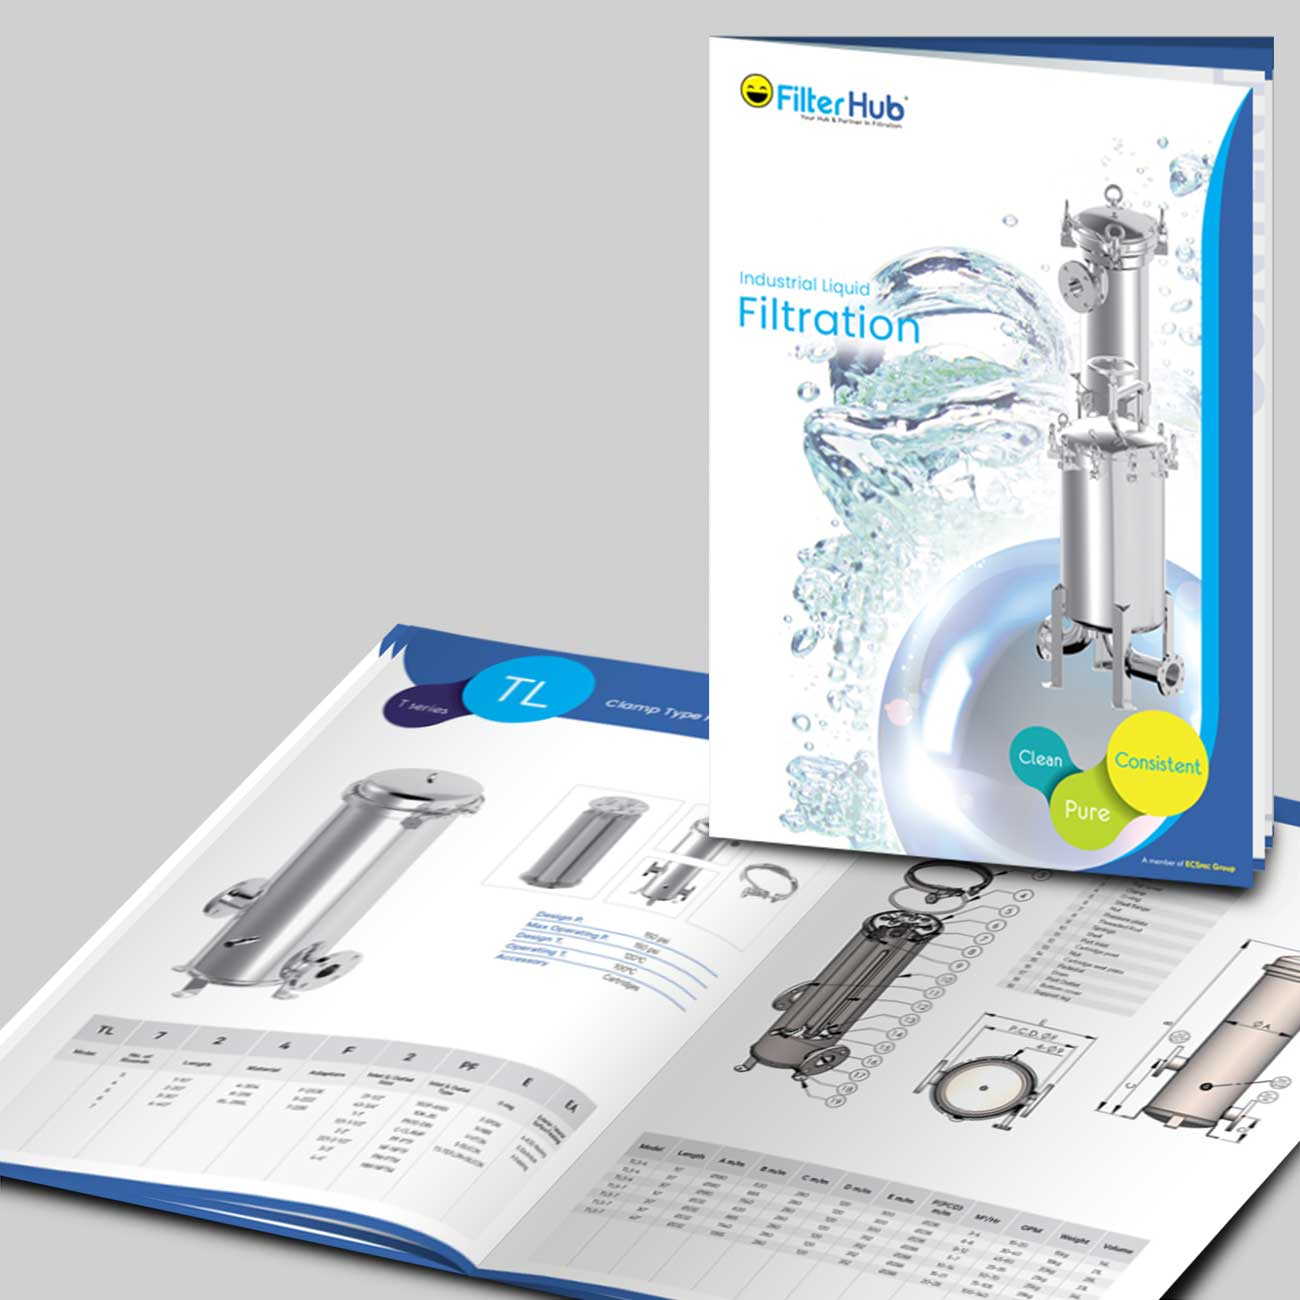 Filterhub Catalogue in Booklet Design